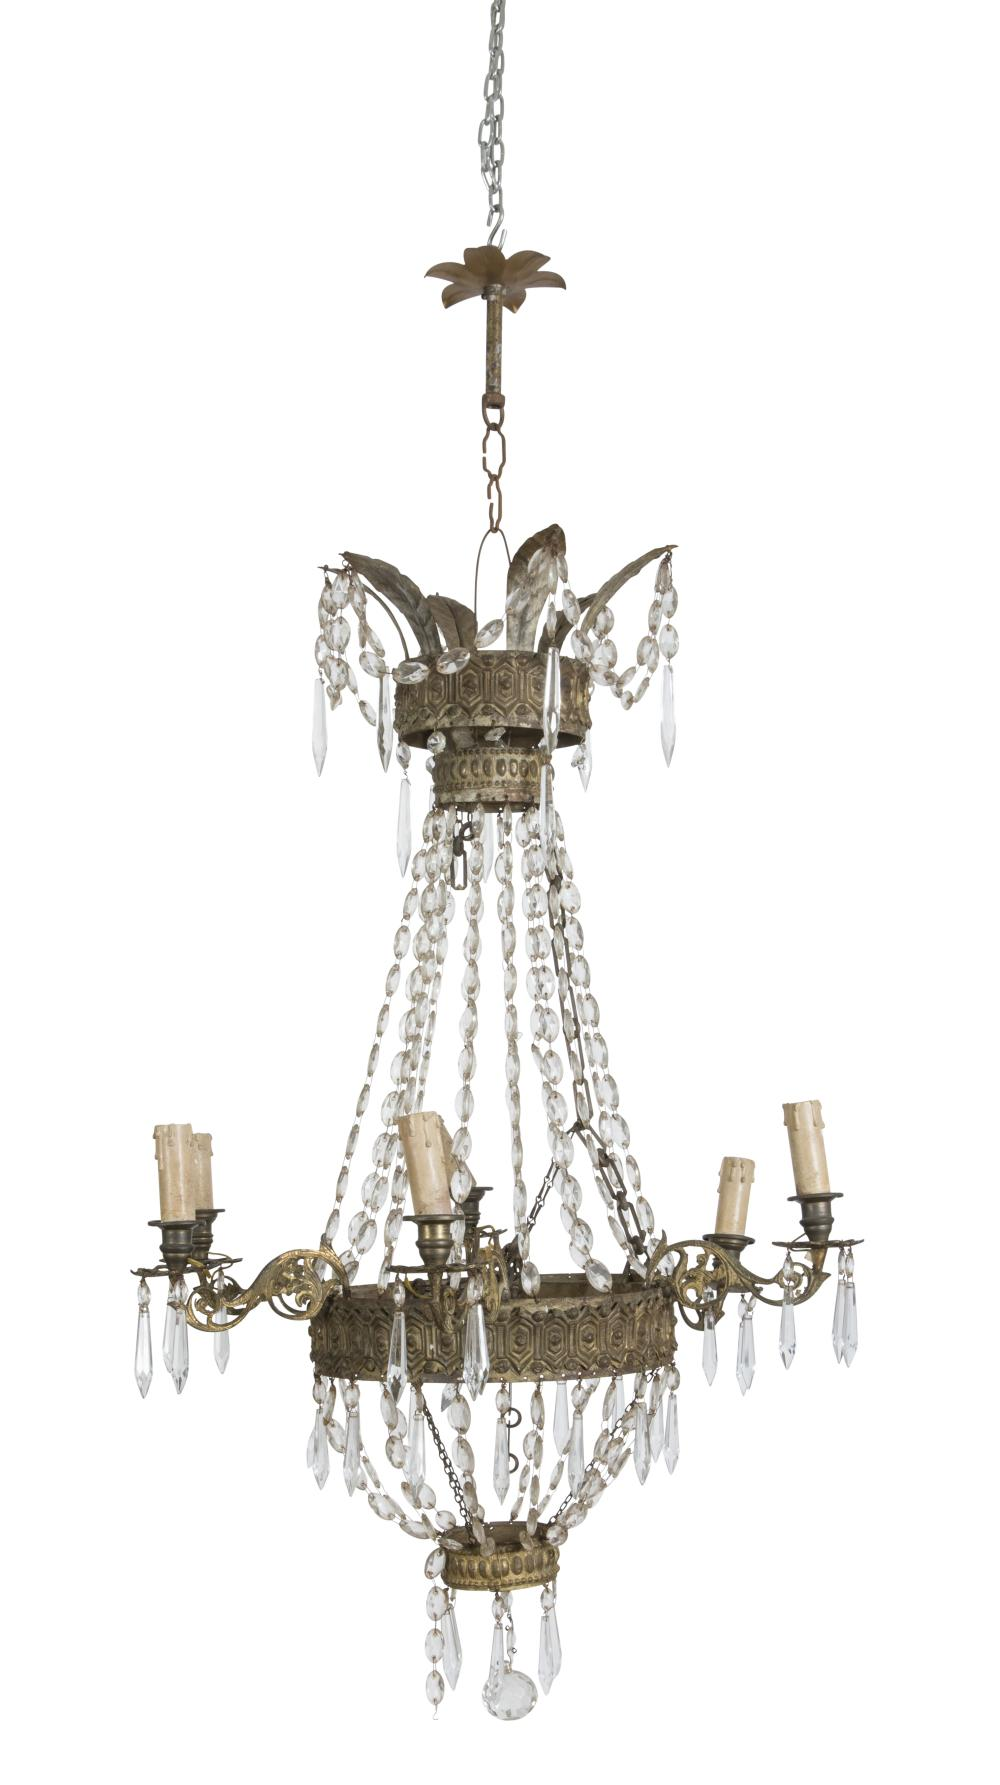 Lot 420: BELL CHANDELIER, EMPIRE PERIOD